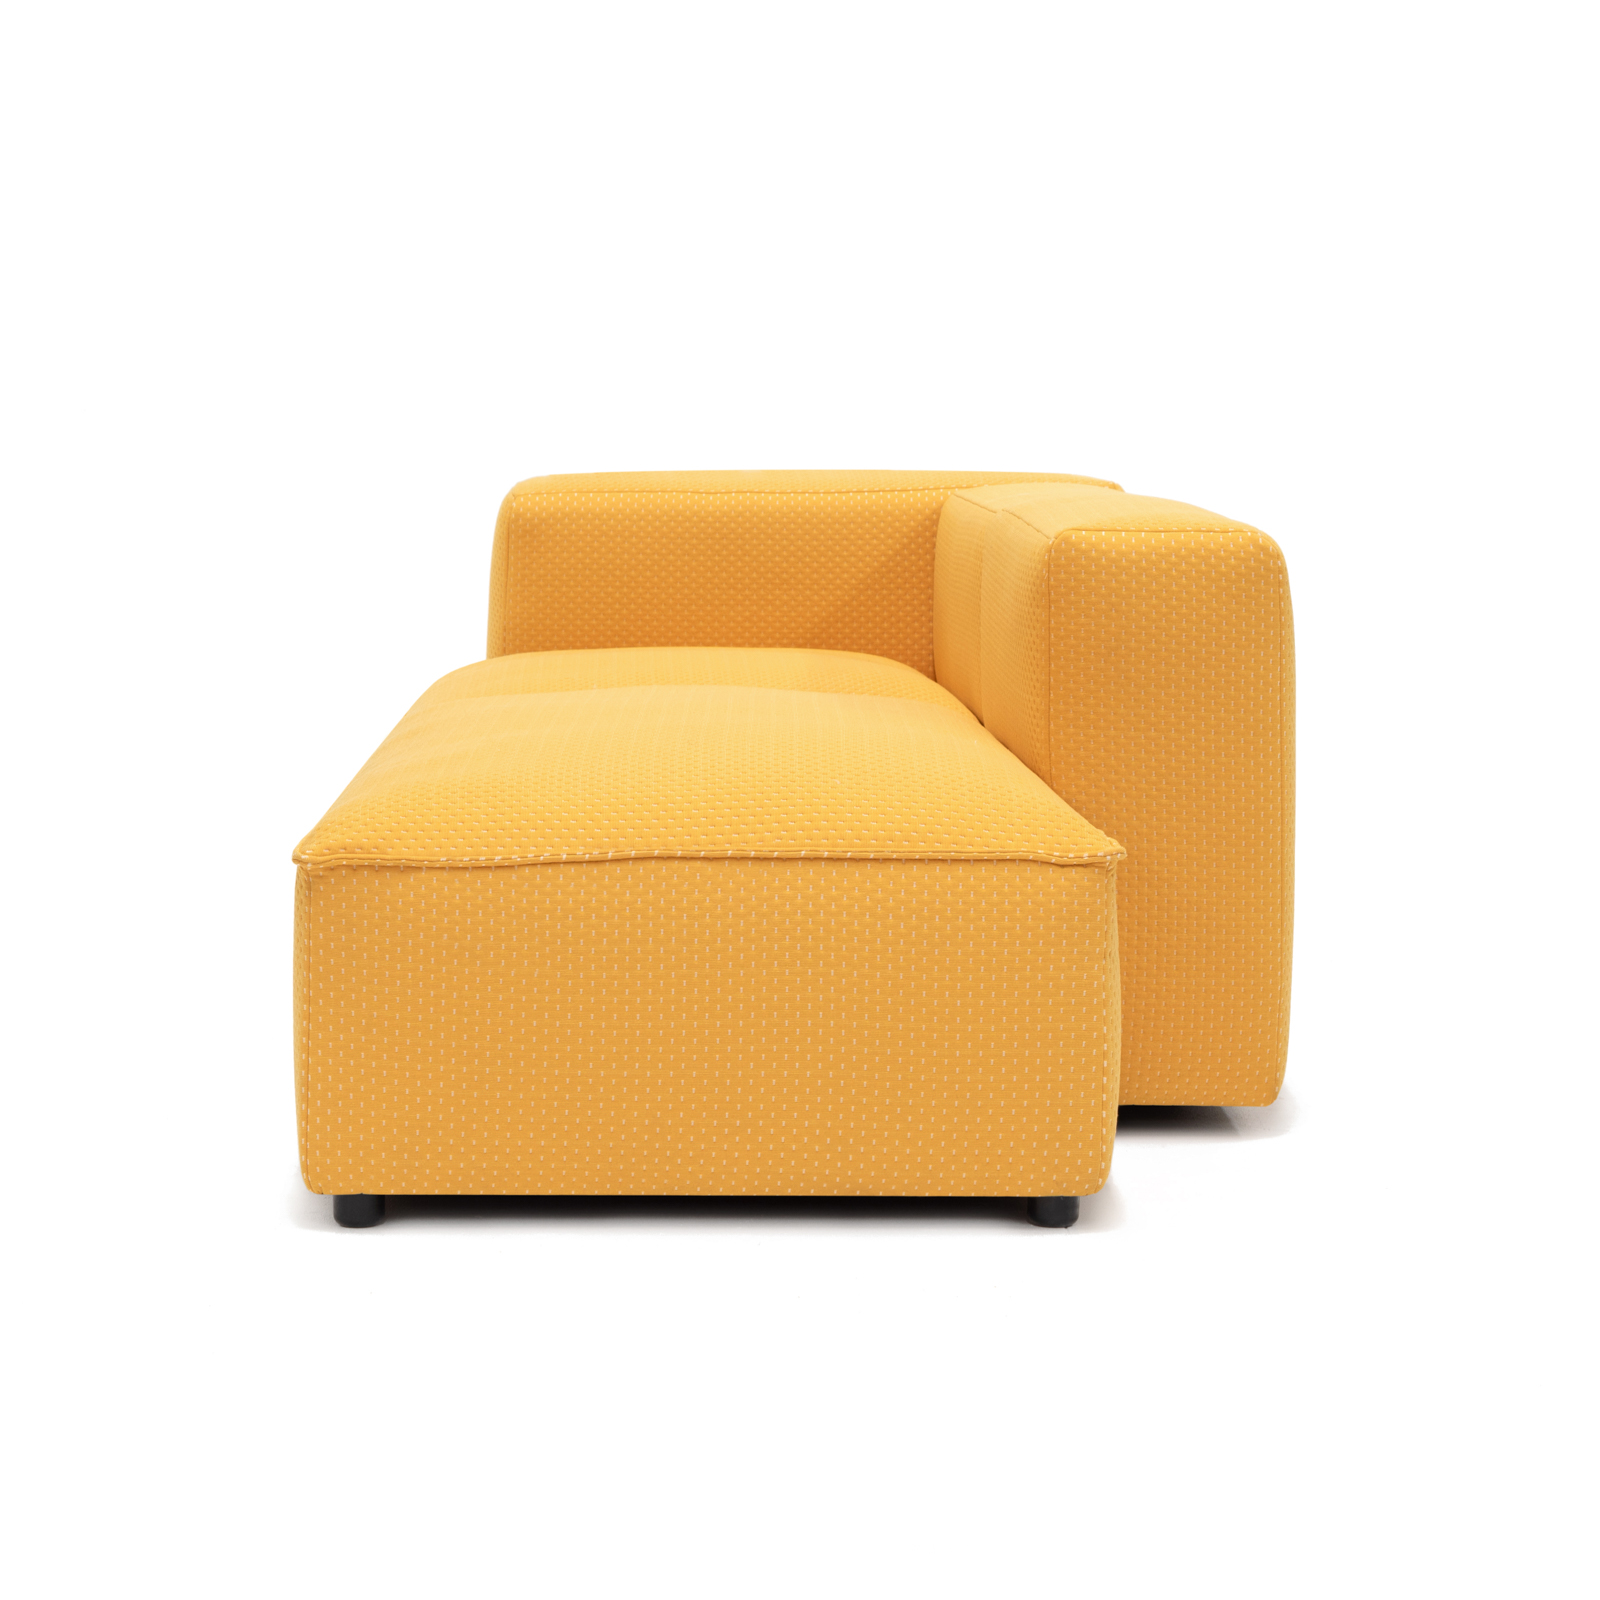 Permanent Future Easey Sofa Chasie Left Zoom Yellow Pf Sf Ea Ch L Zy Side View